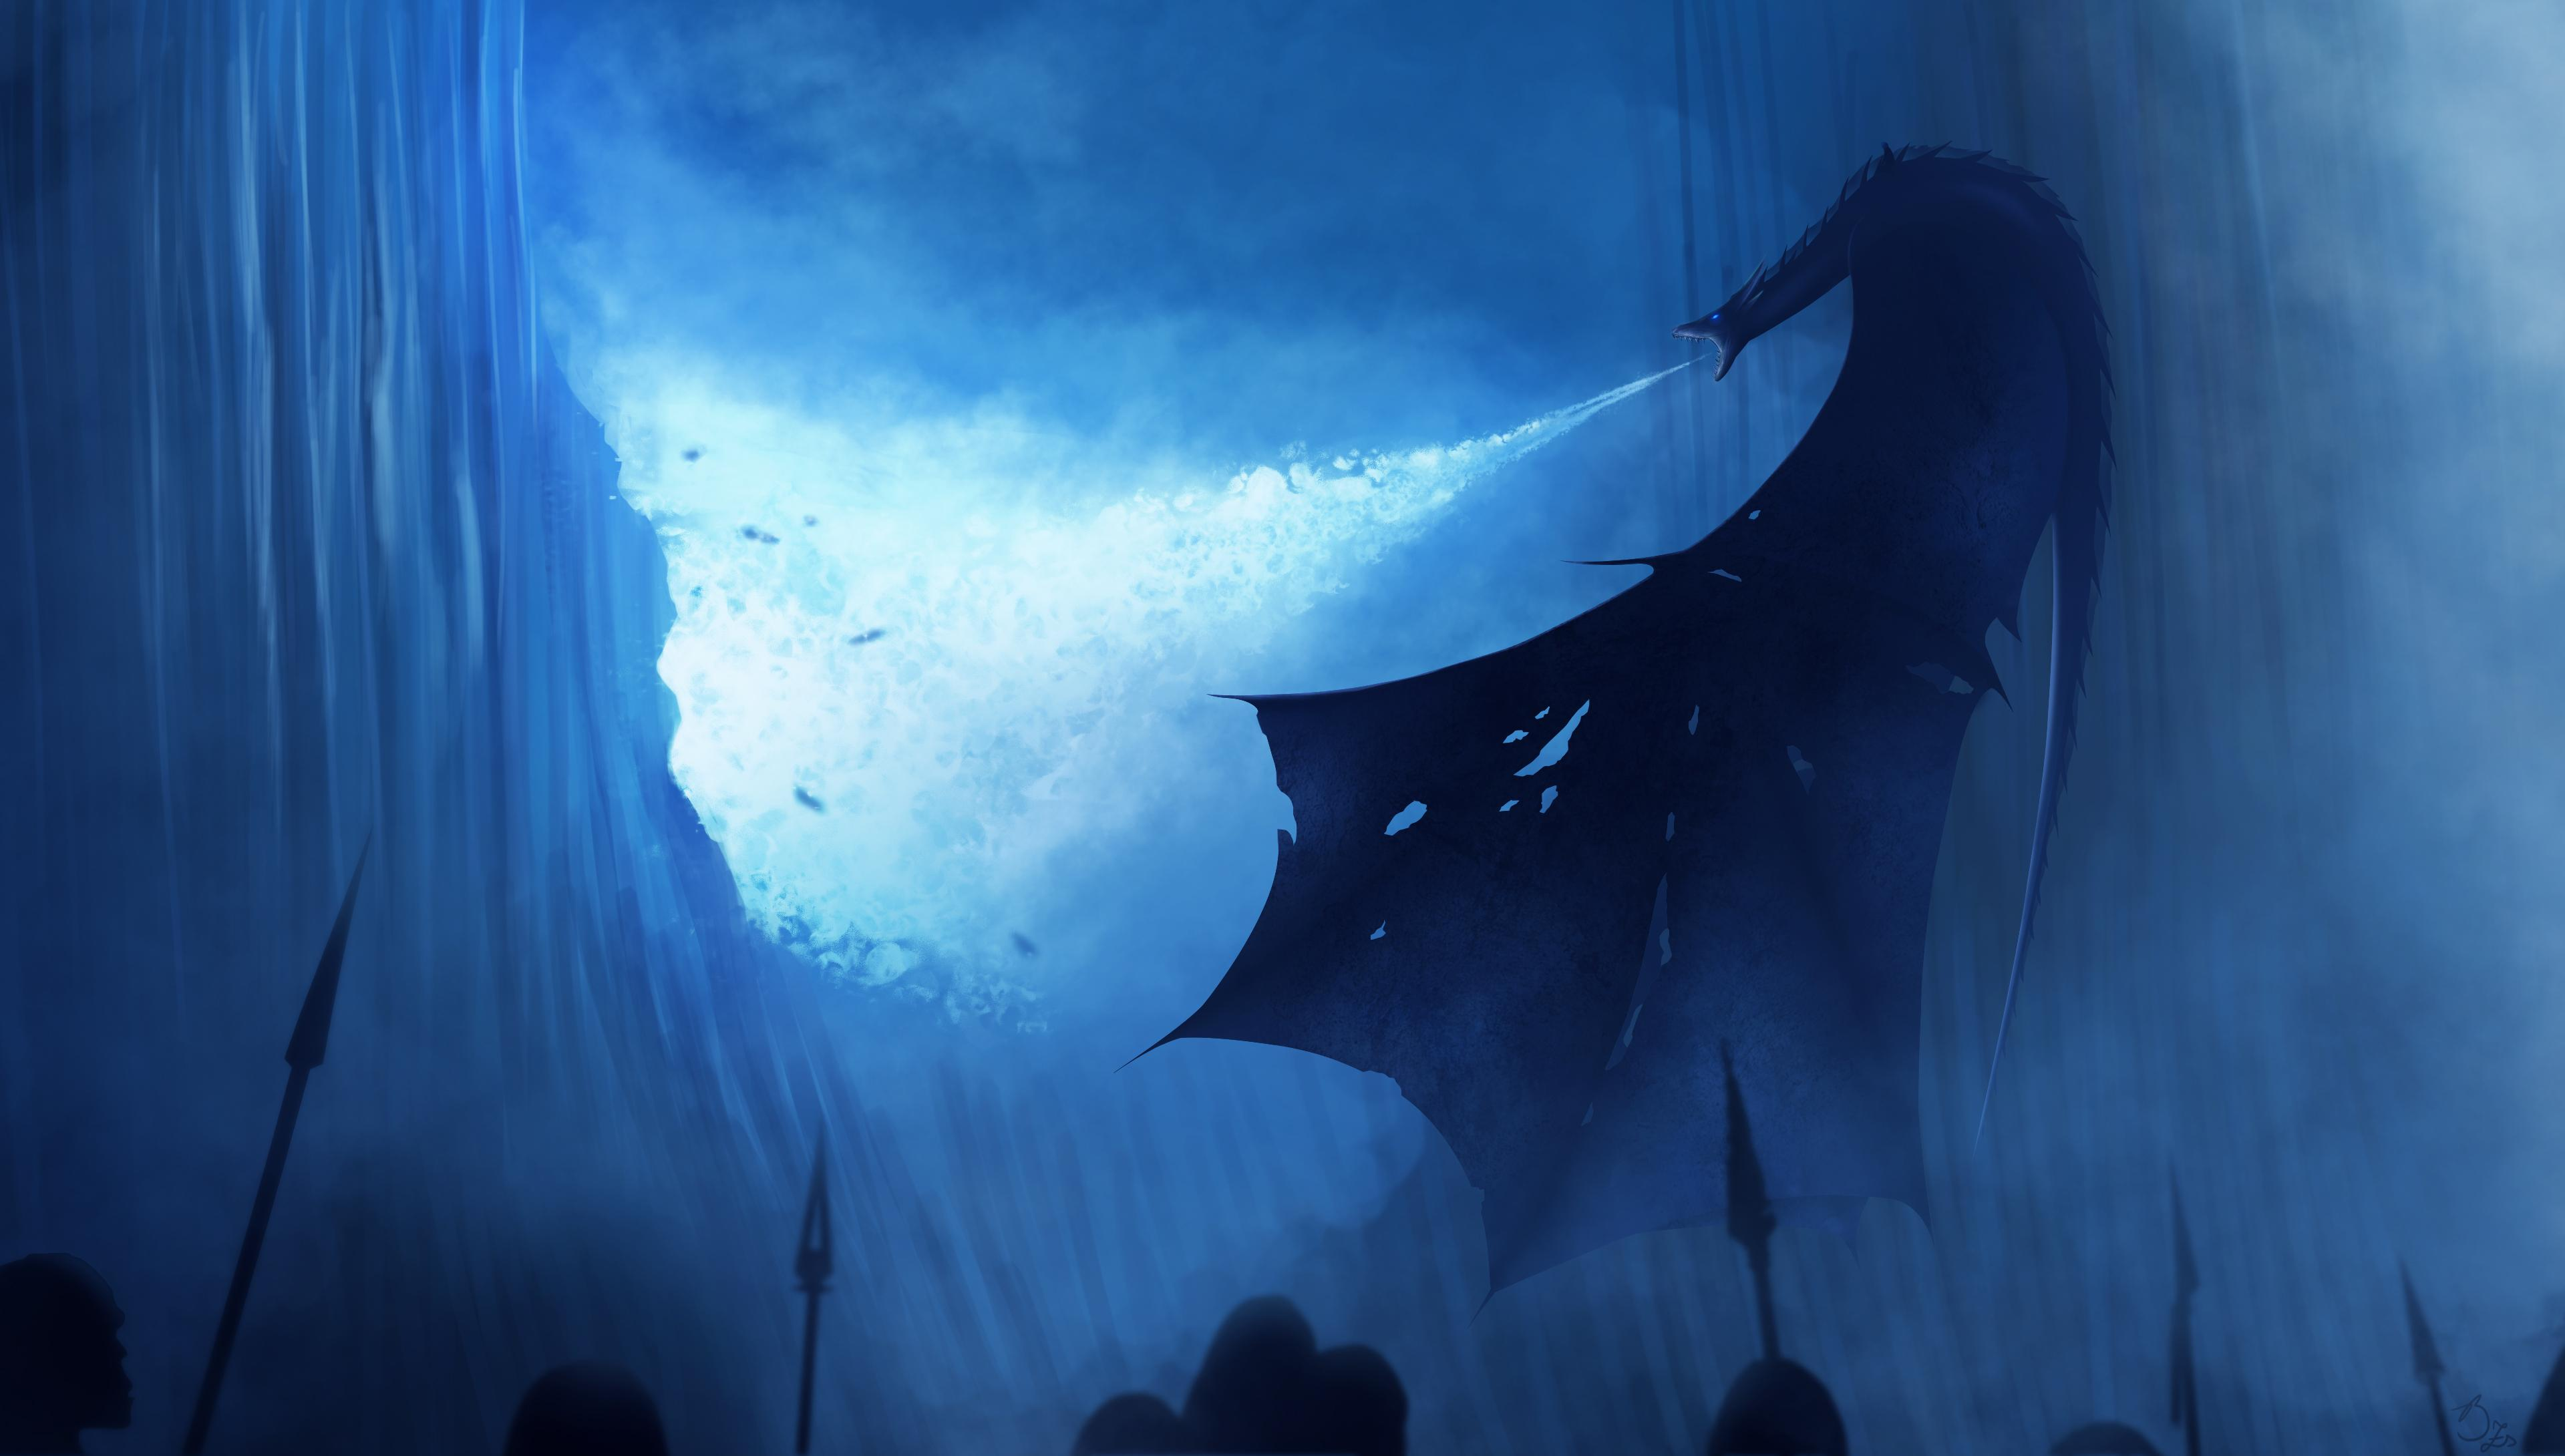 Game Of Thrones 8k Wallpapers Top Free Game Of Thrones 8k Backgrounds Wallpaperaccess